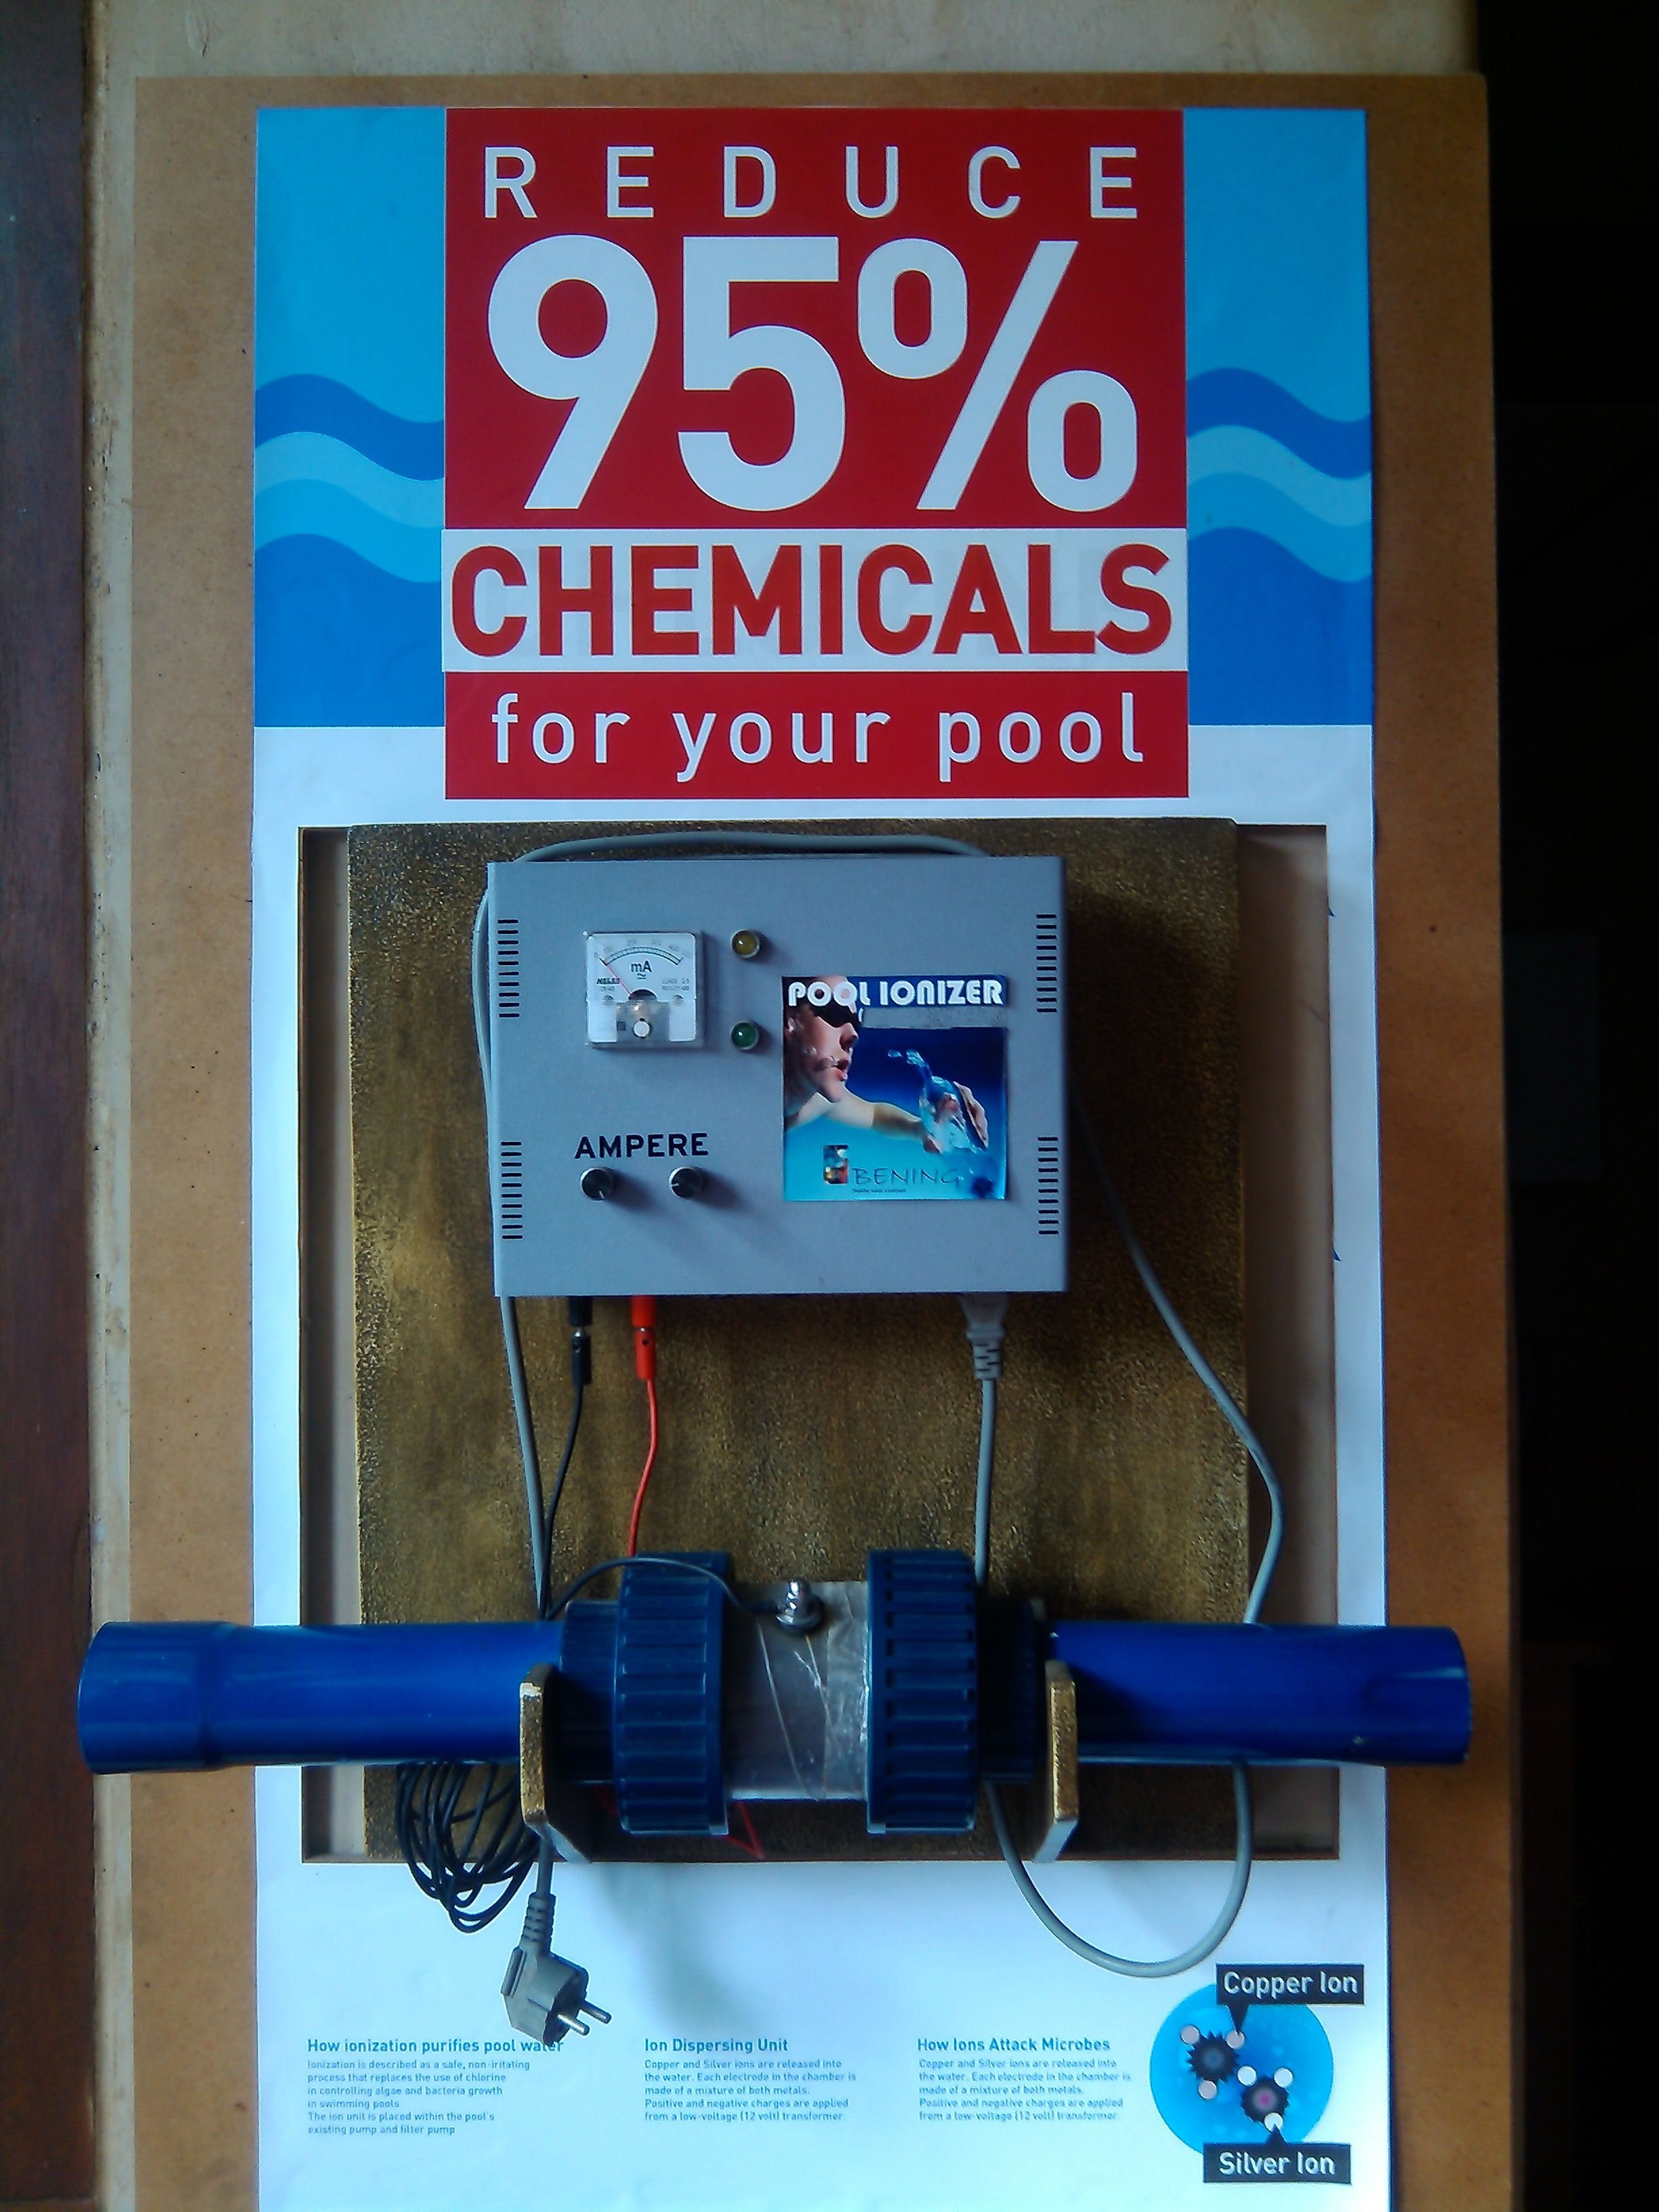 POOL IONIZER. Reduce 95% Chemicals for your pool | Swimming ...